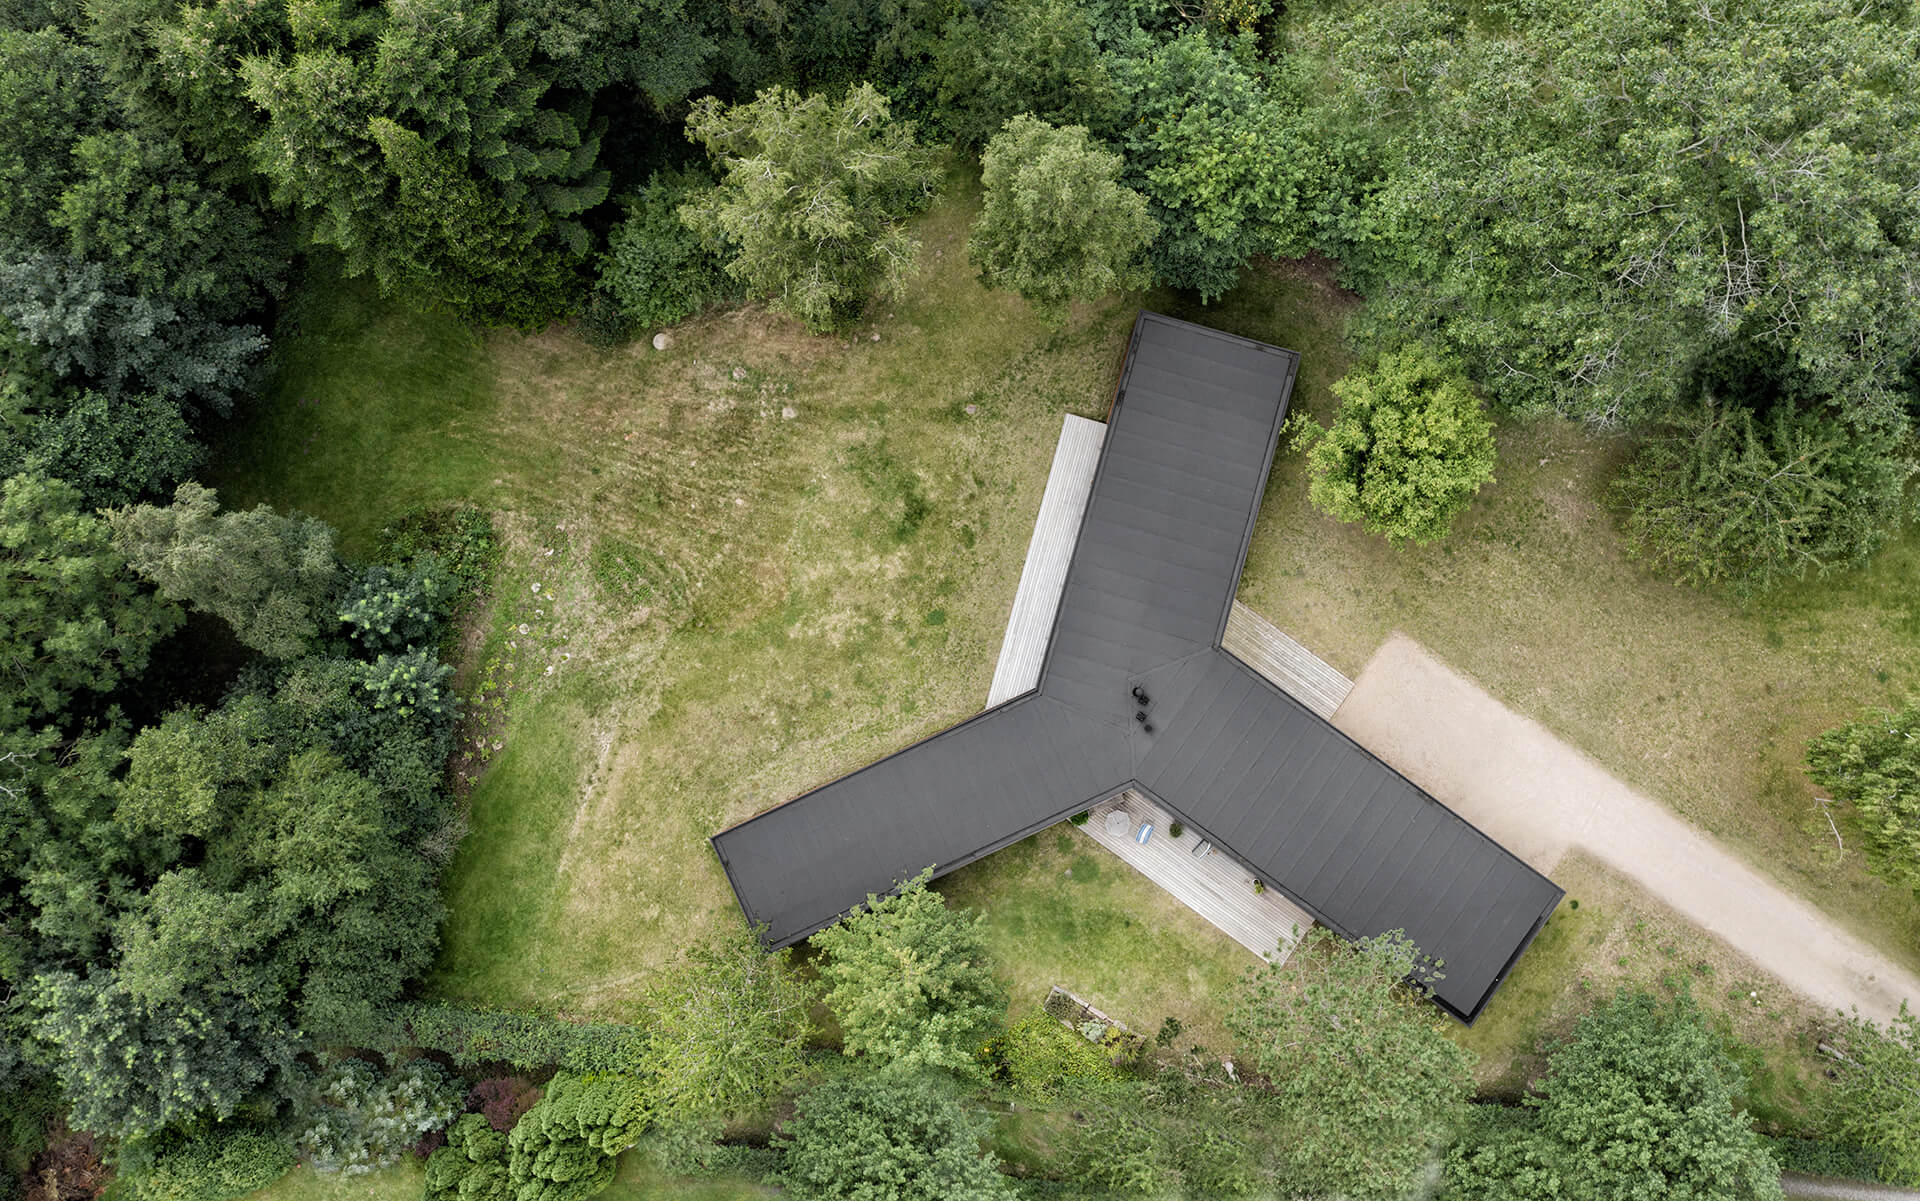 The three legged form of Villa Korup | Villa Korup designed by Jan Henrik Jansen Arkitekter with Marshall Blecher | STIRworld